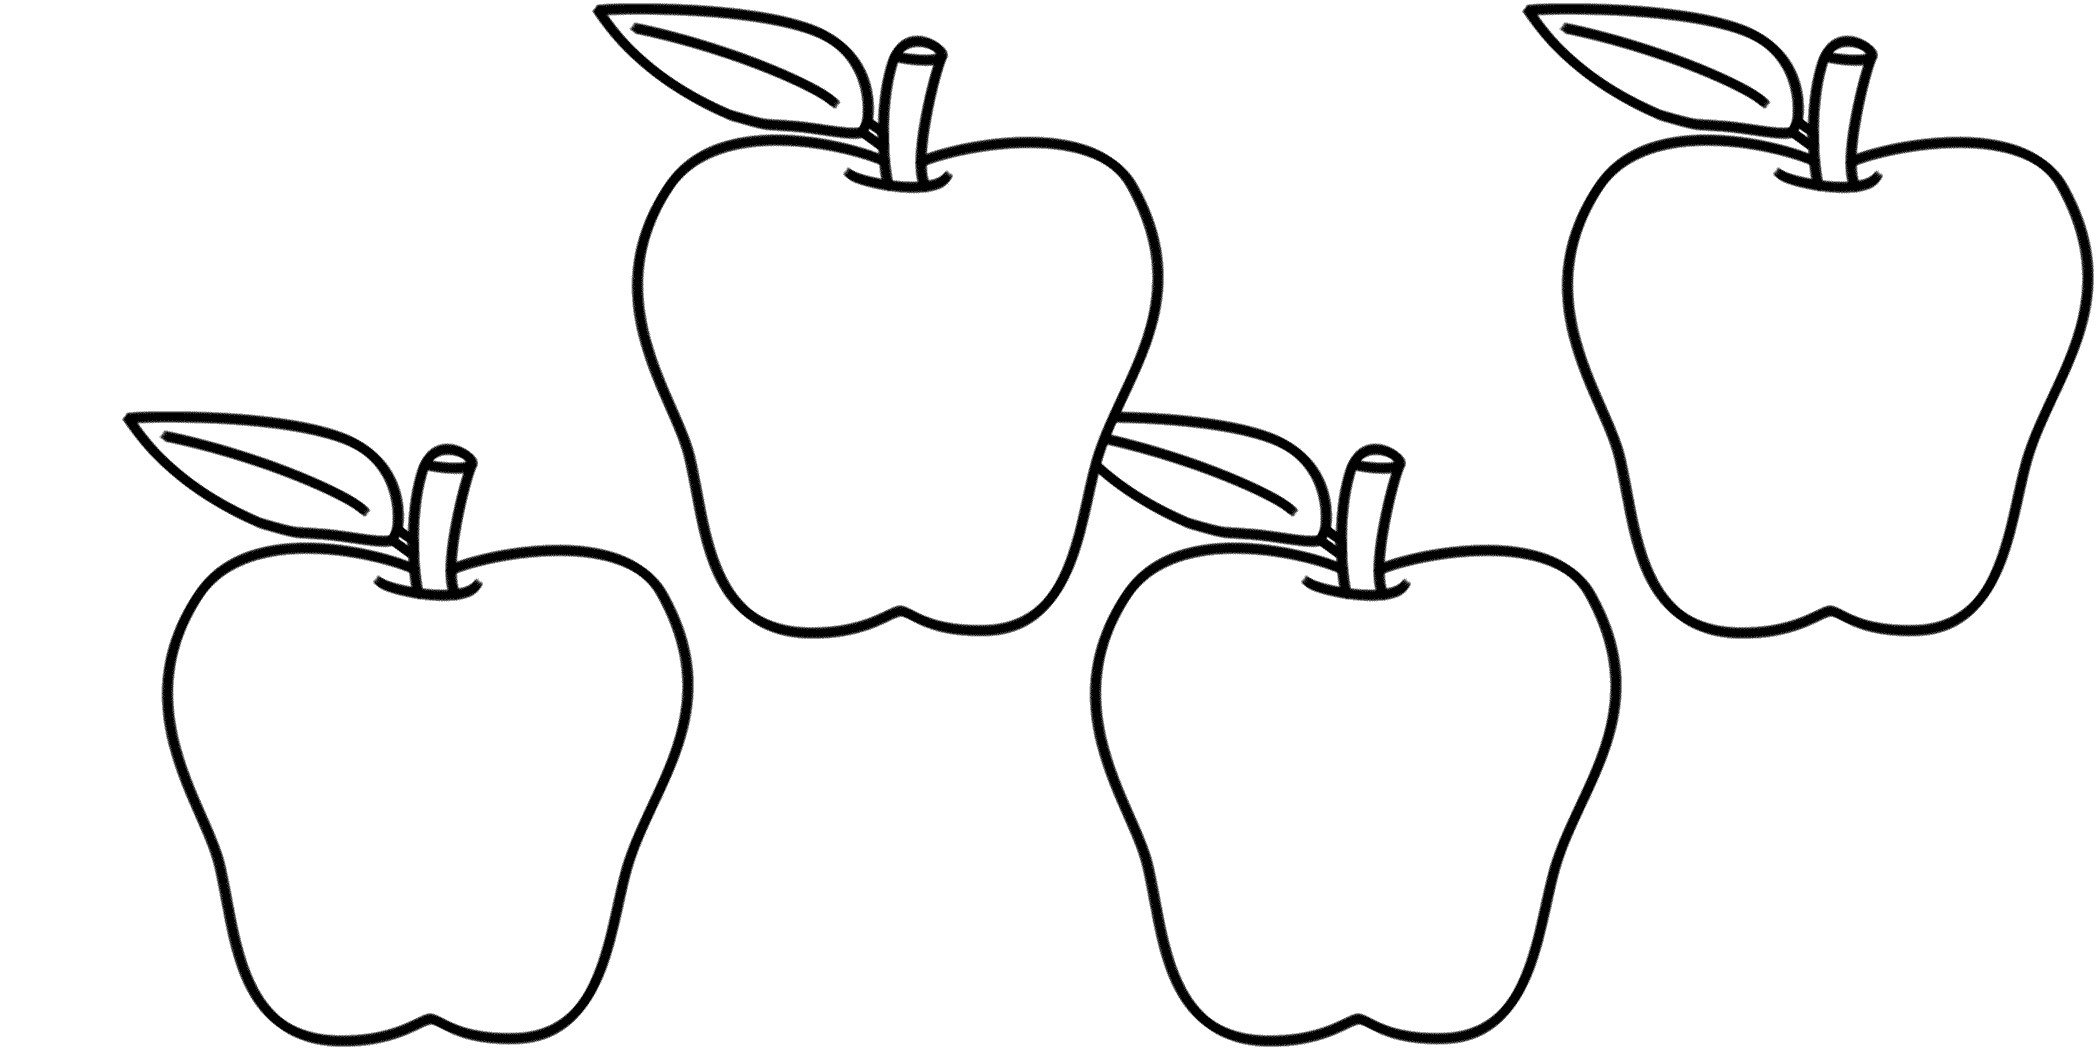 Apples Clipart Black And White 20 Free Cliparts